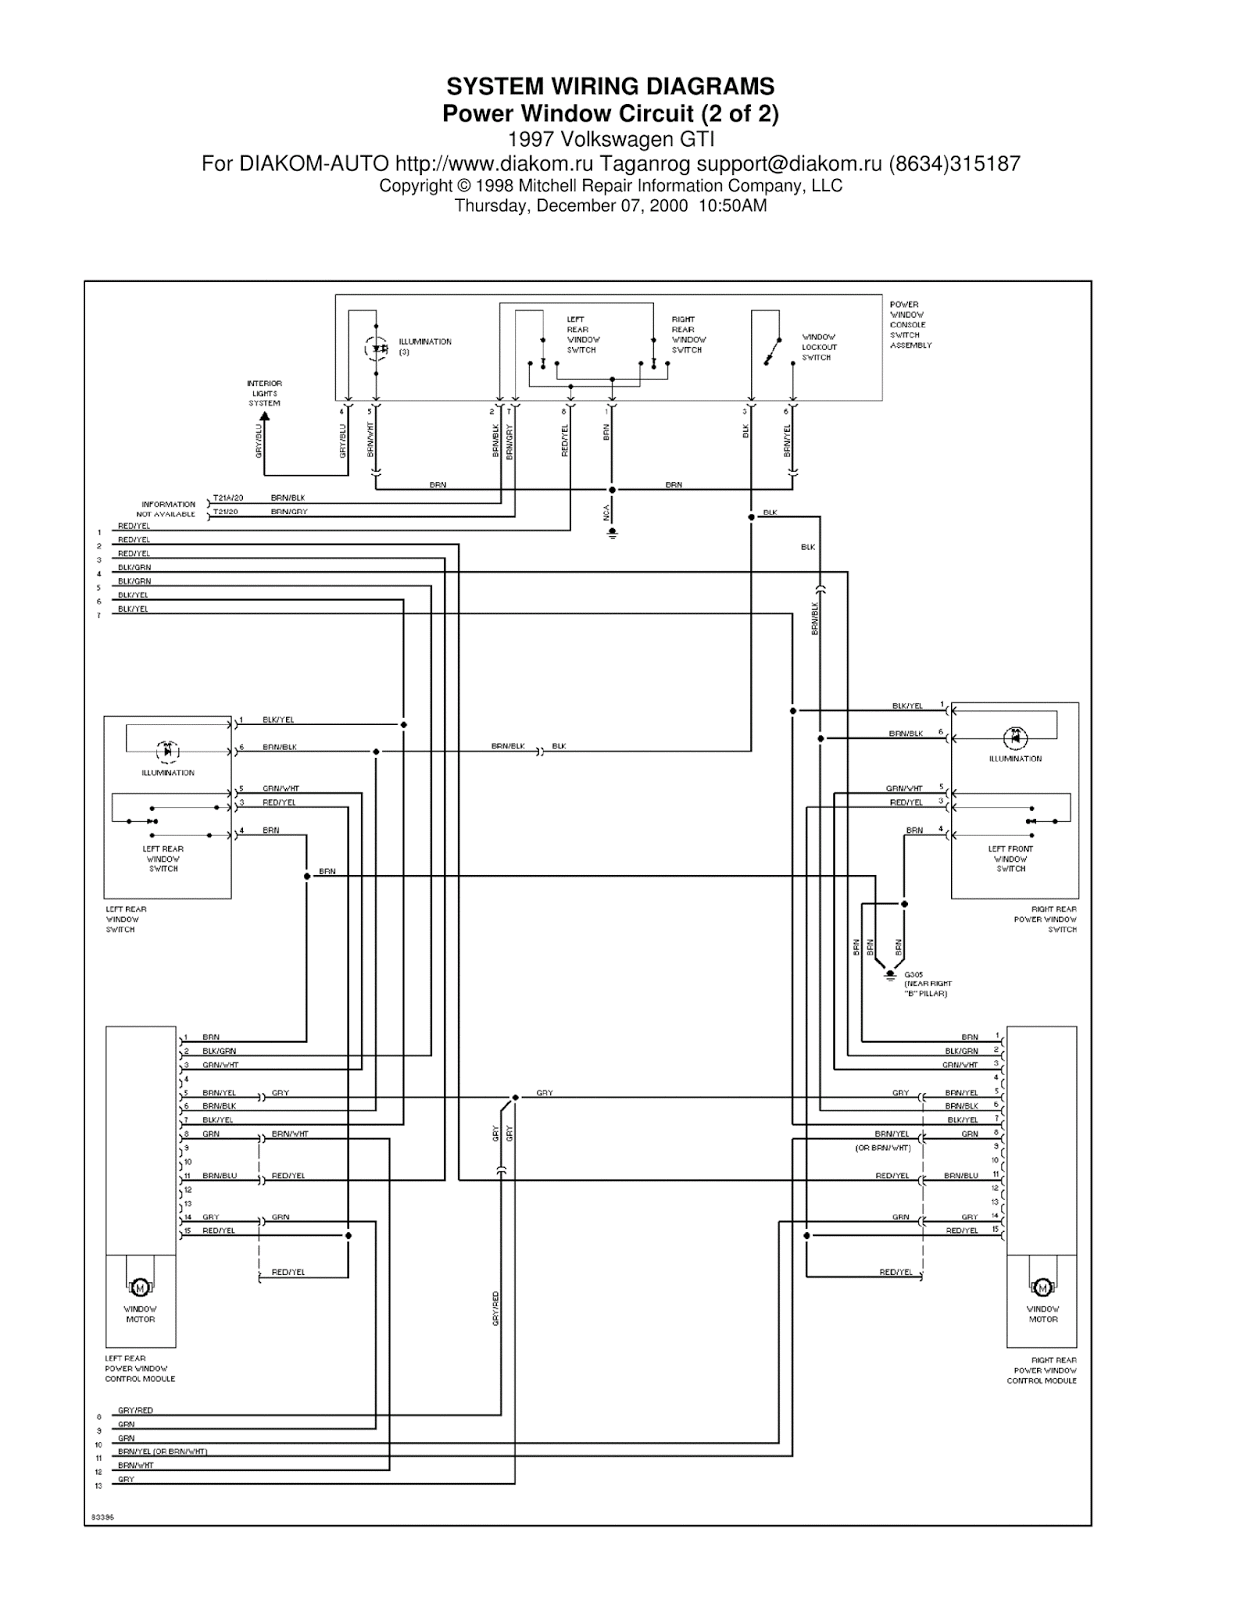 1968 Camaro Wiring Diagram Online Sump Pump 2012 Tail Light Free